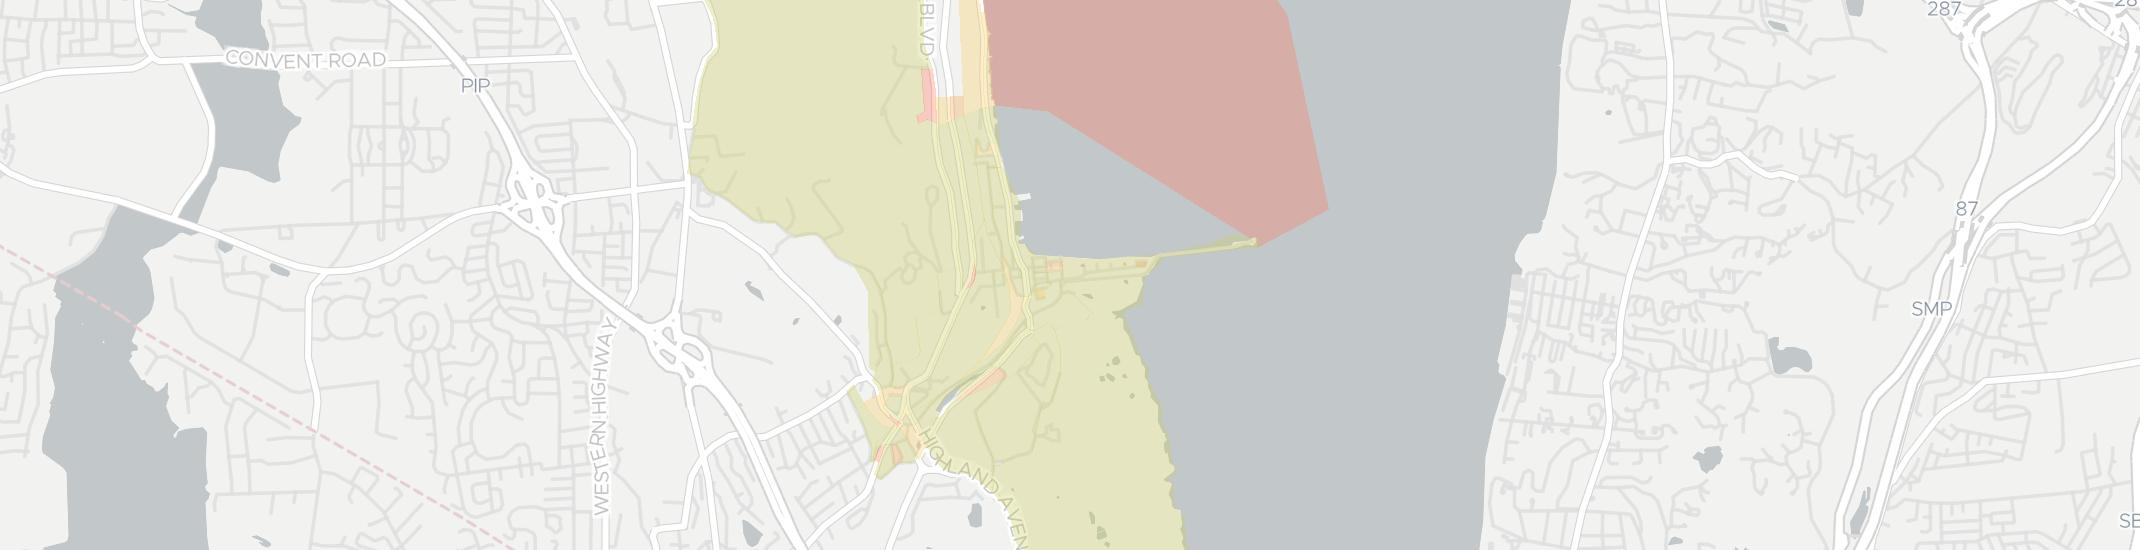 Piermont Internet Competition Map. Click for interactive map.